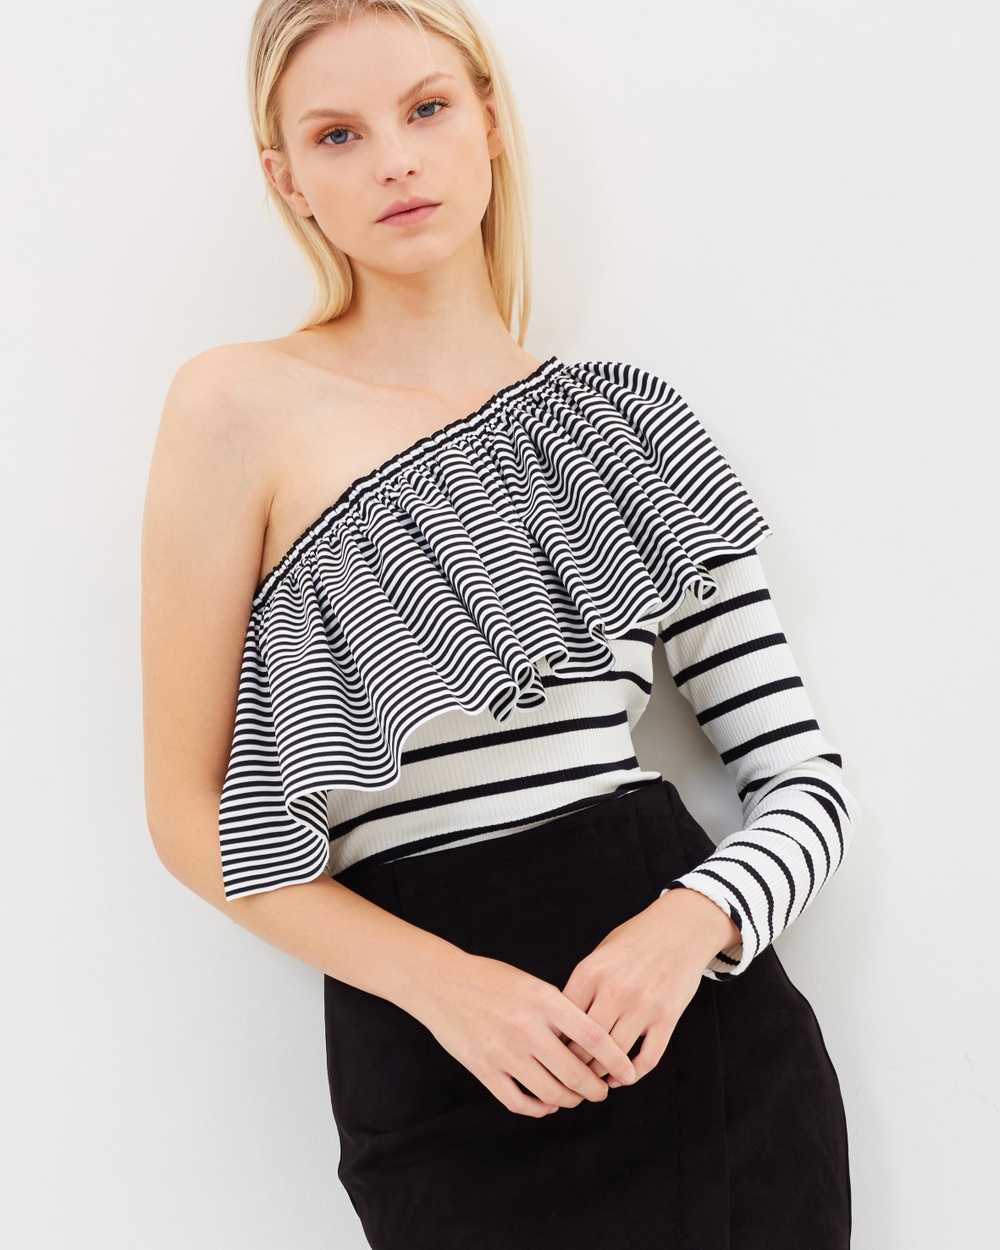 BY JOHNNY. Illusion Frill Shoulder Top Tops White & Black Illusion Frill Shoulder Top